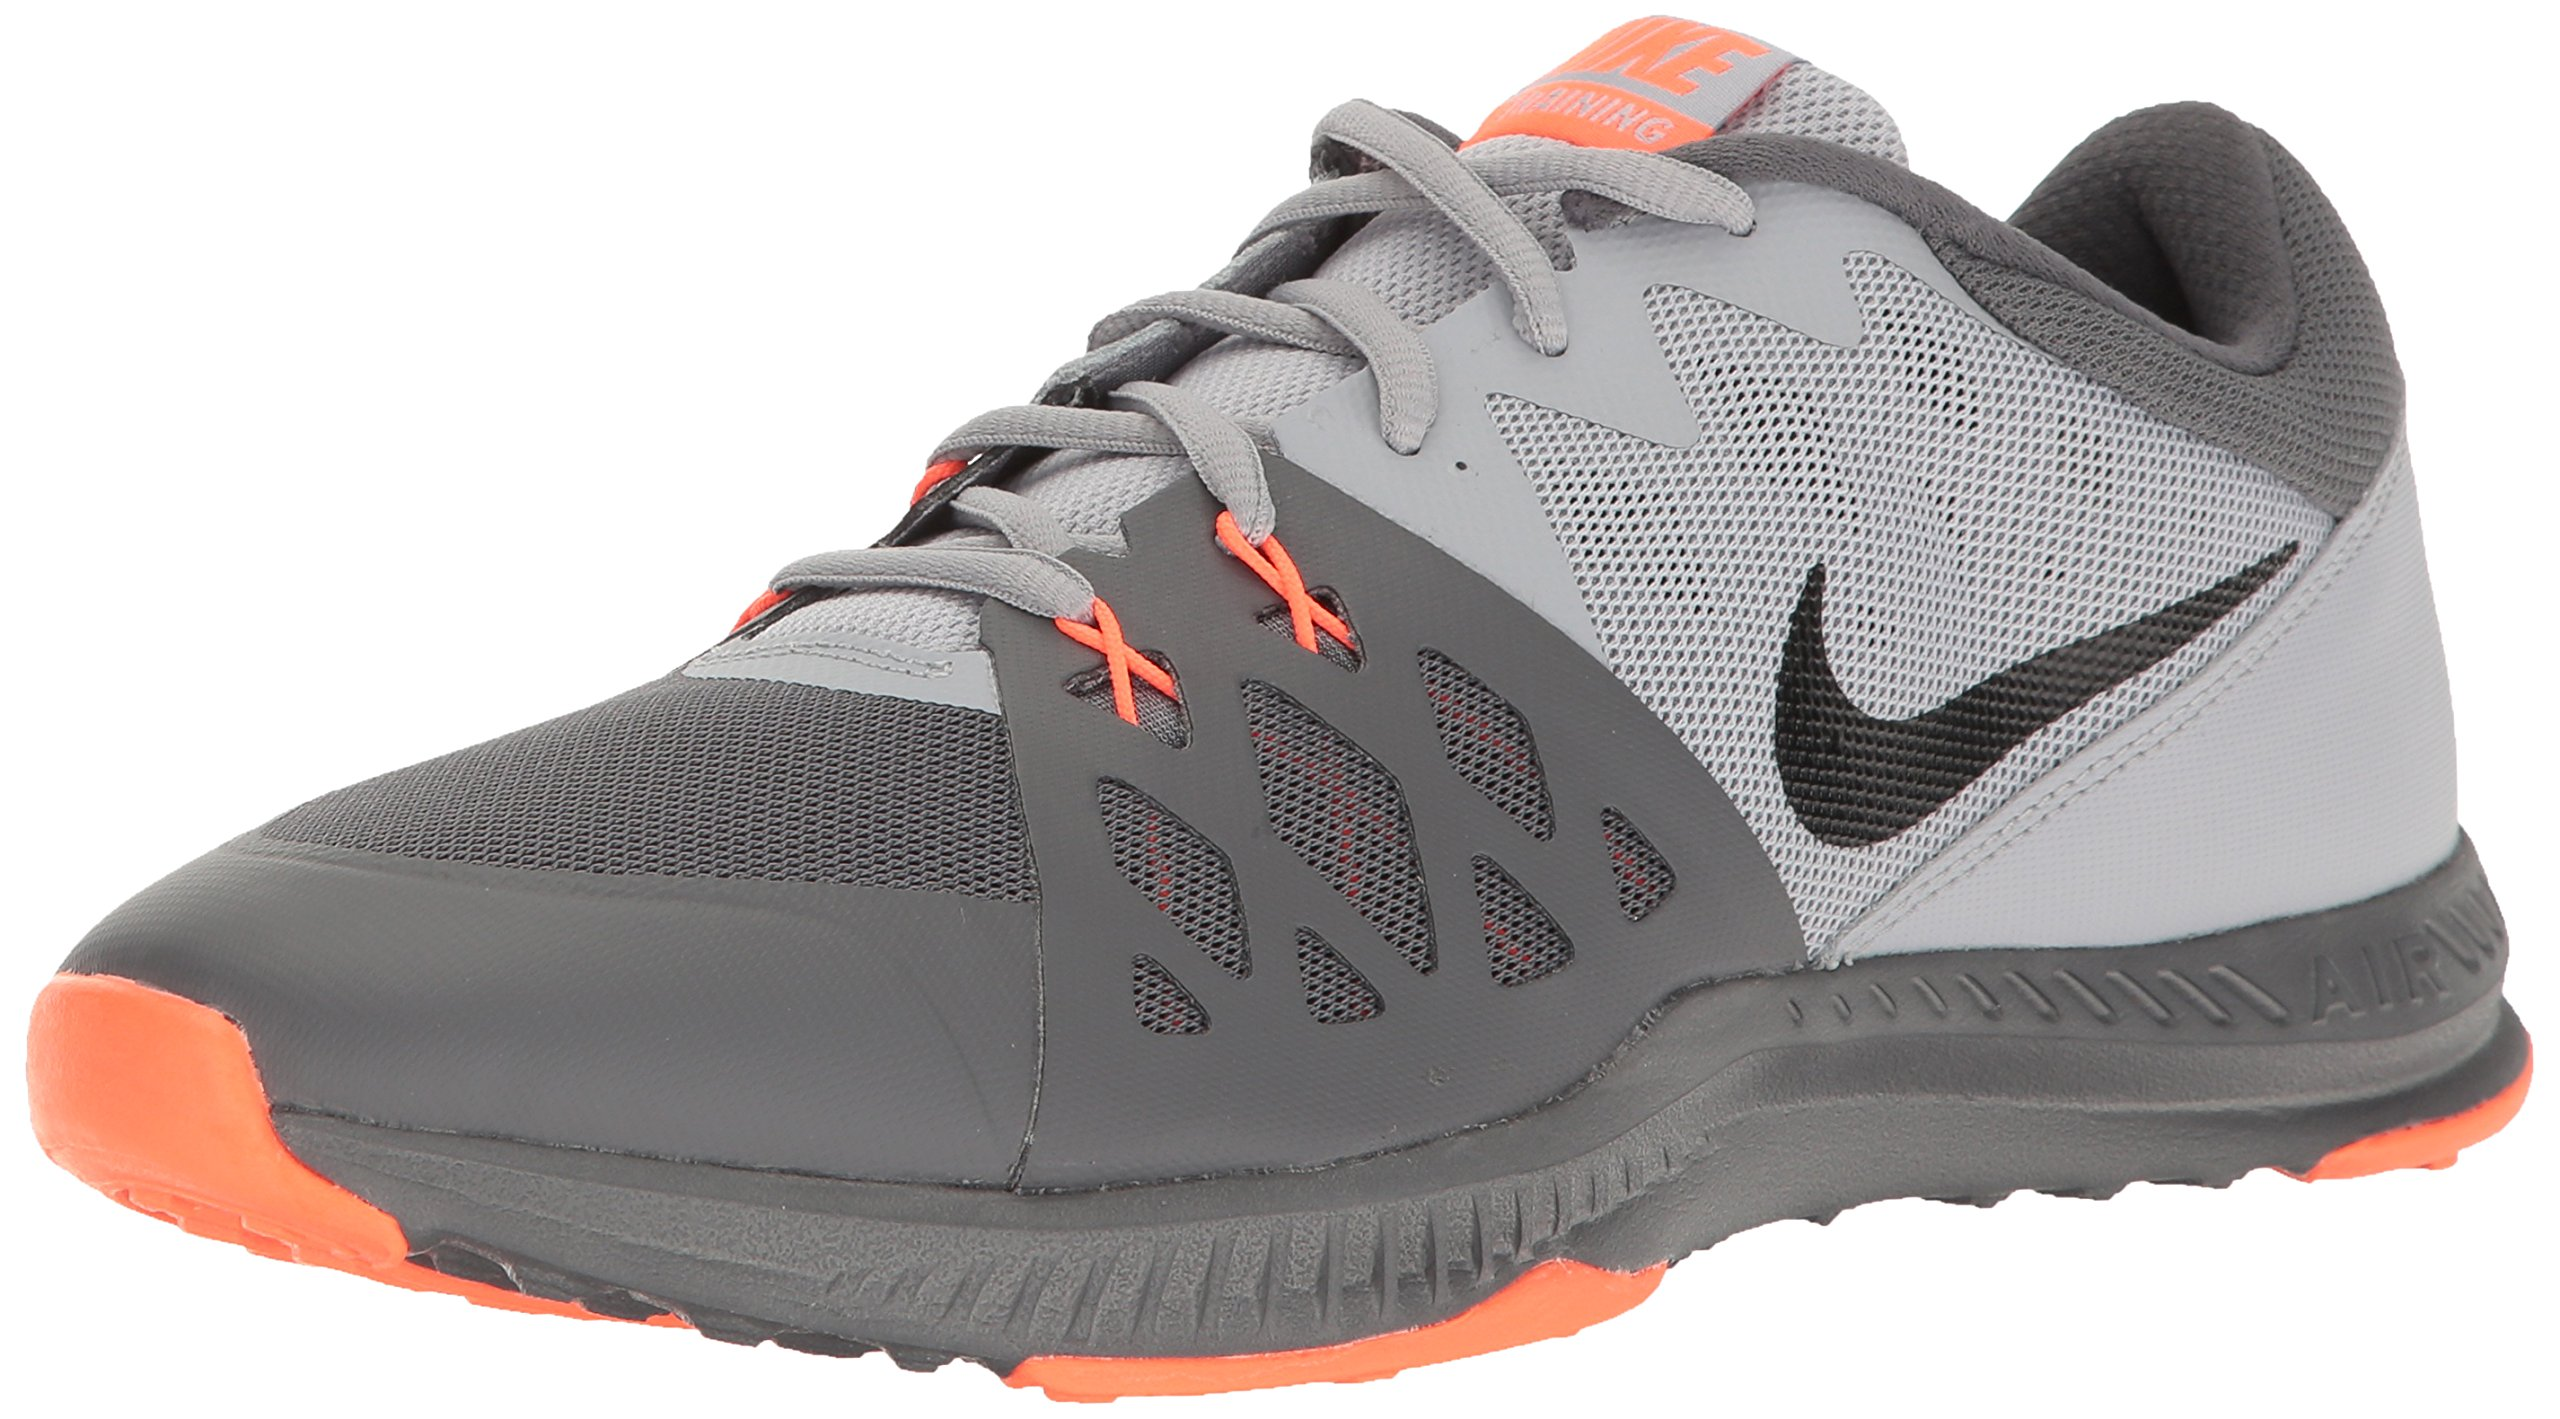 NIKE Men's Air Epic Speed TR II Cross Trainer, Dark Grey/Black/Wolf Grey/Hyper Orange, 9.5 D(M) US by NIKE